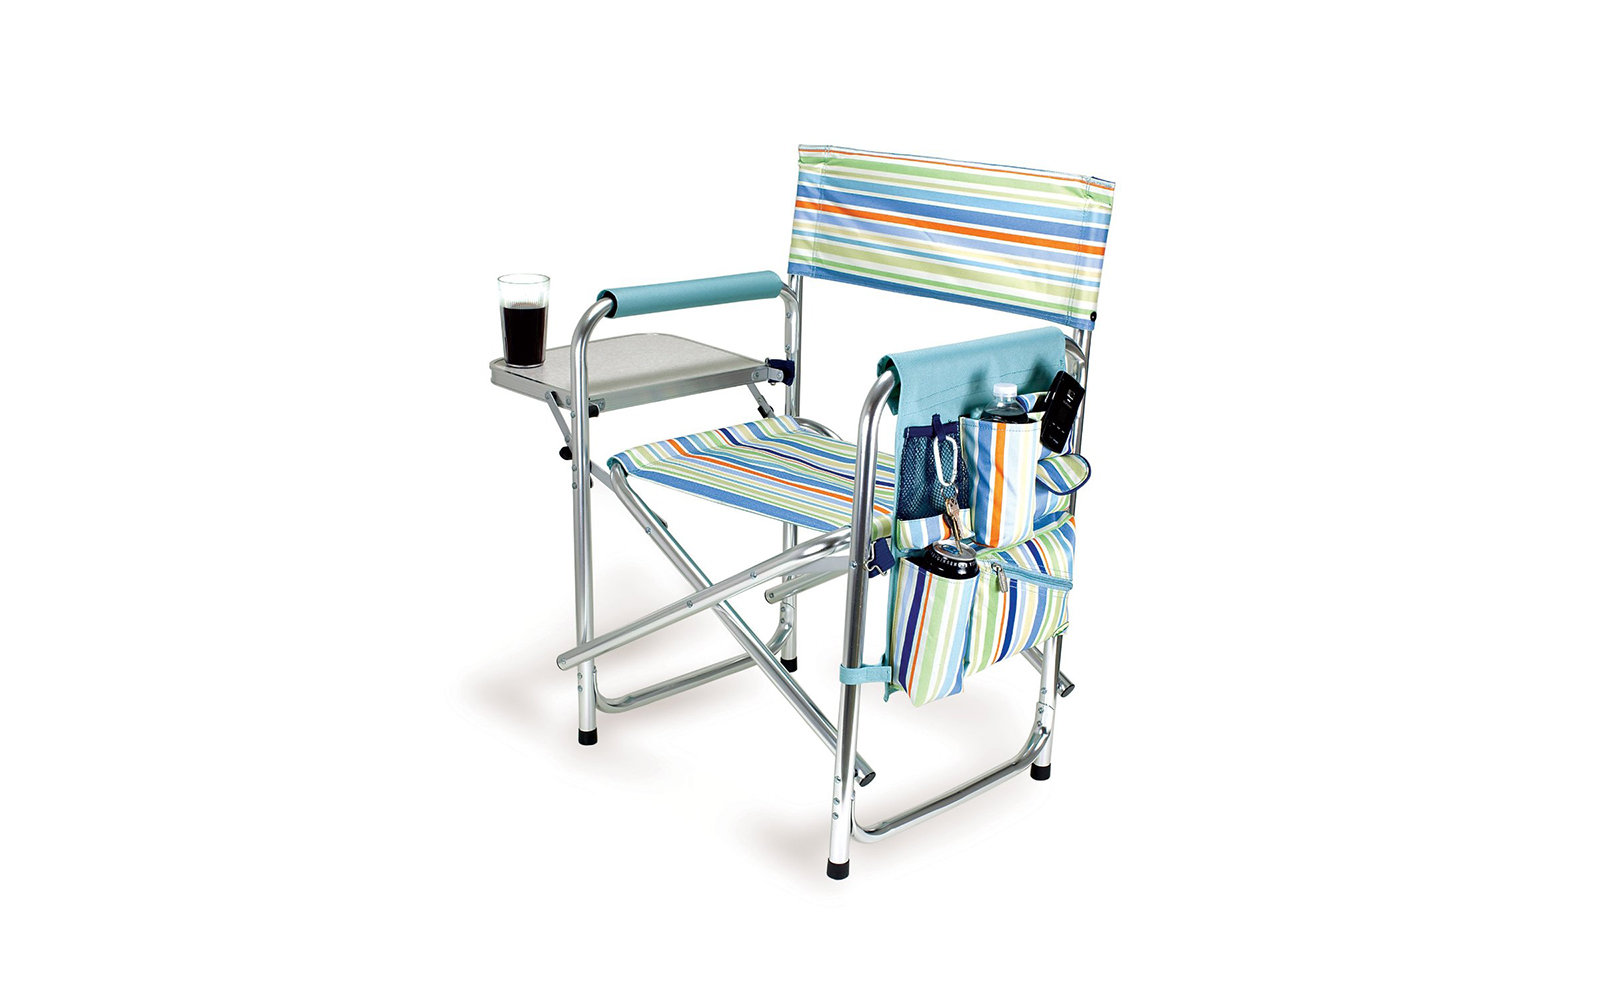 Best Camp Chair The Best Folding Camping Chairs Travel 43 Leisure